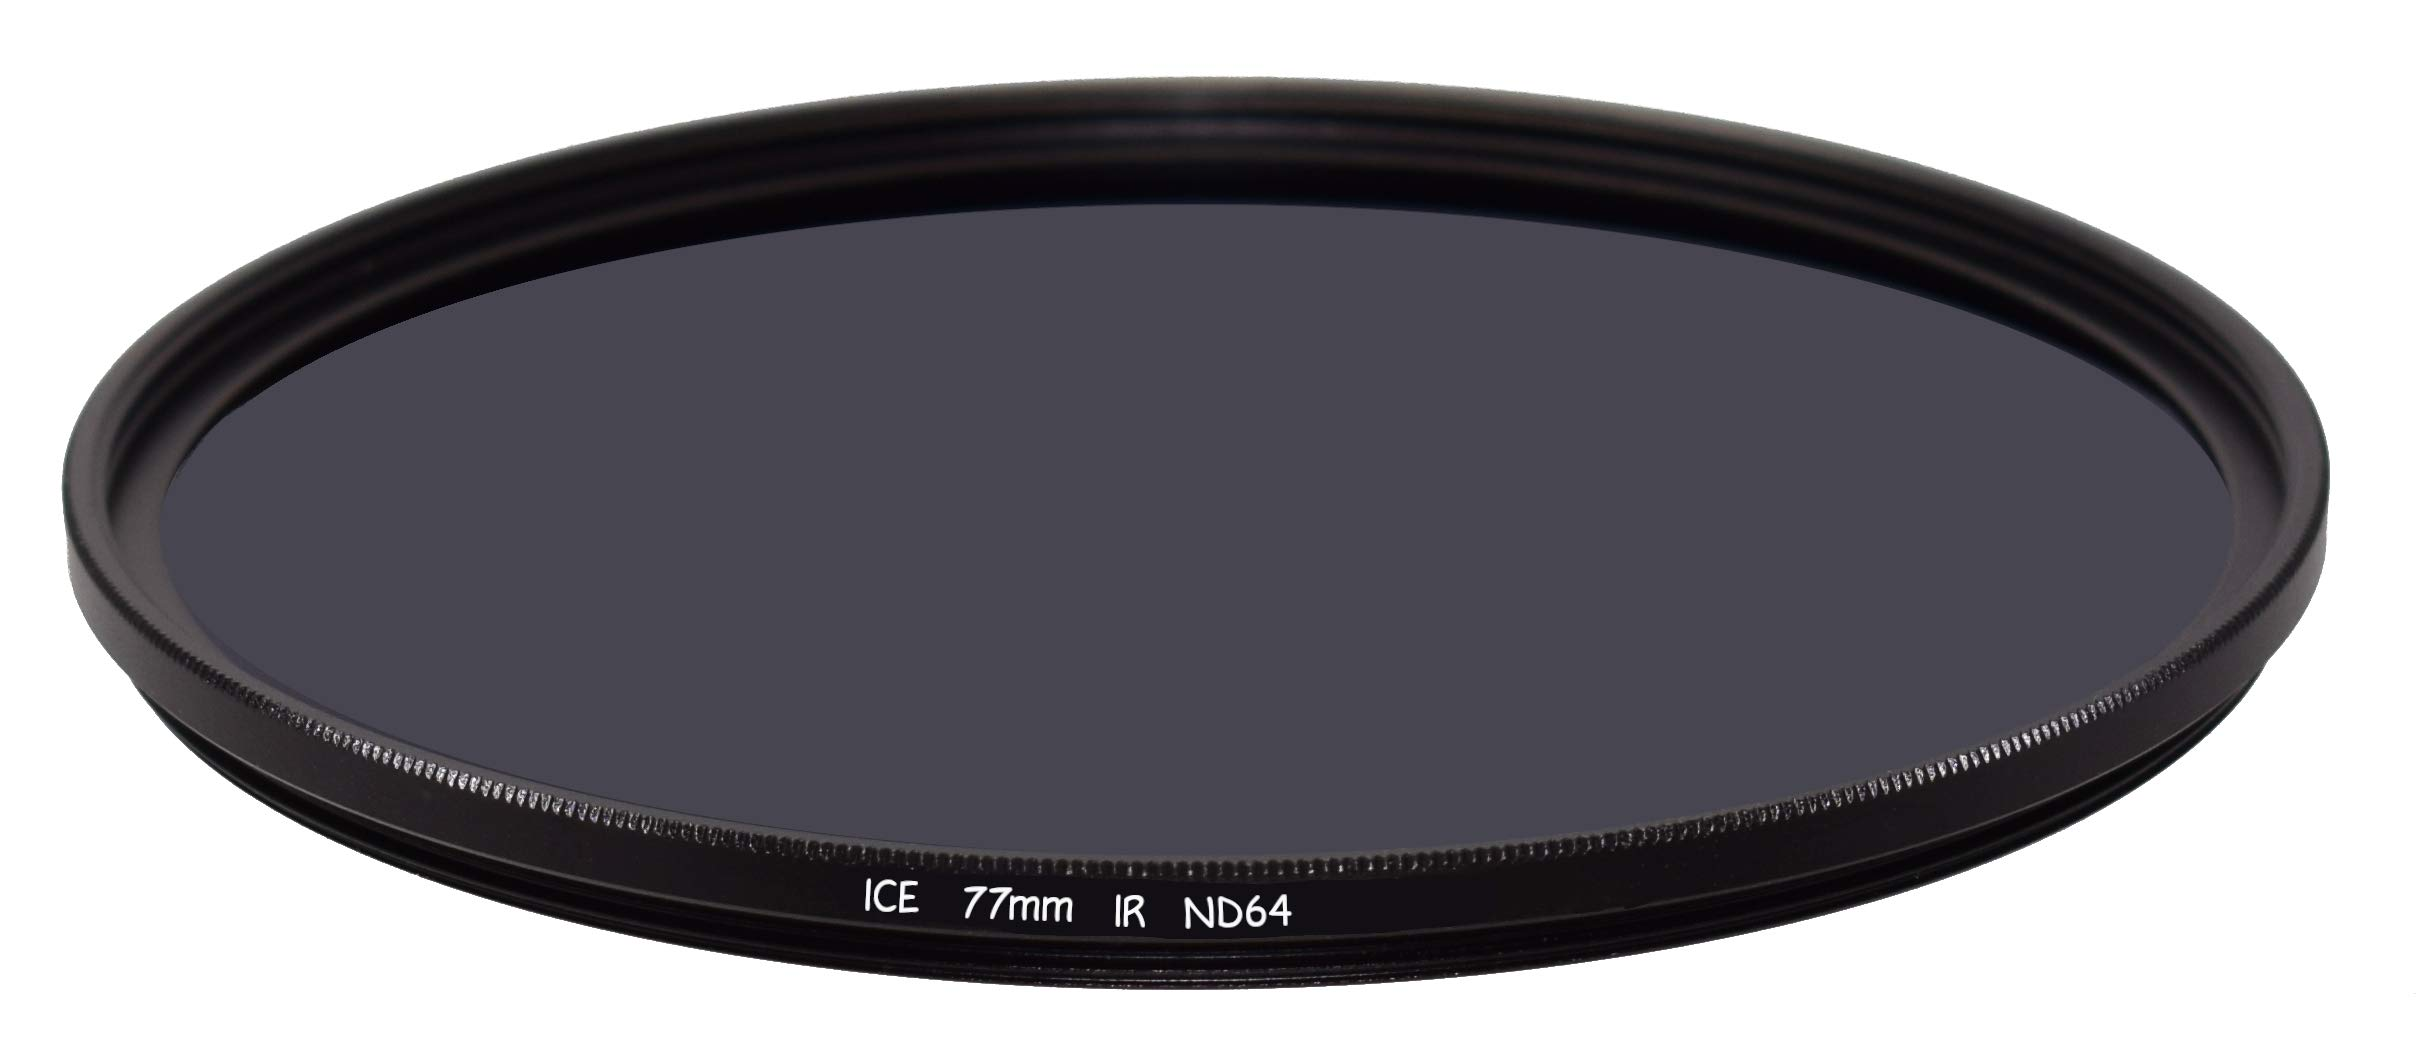 ICE 77mm IR Cut / ND64 MC Filter Neutral Density ND 64 6 Stop Optical Glass 77 by Unknown